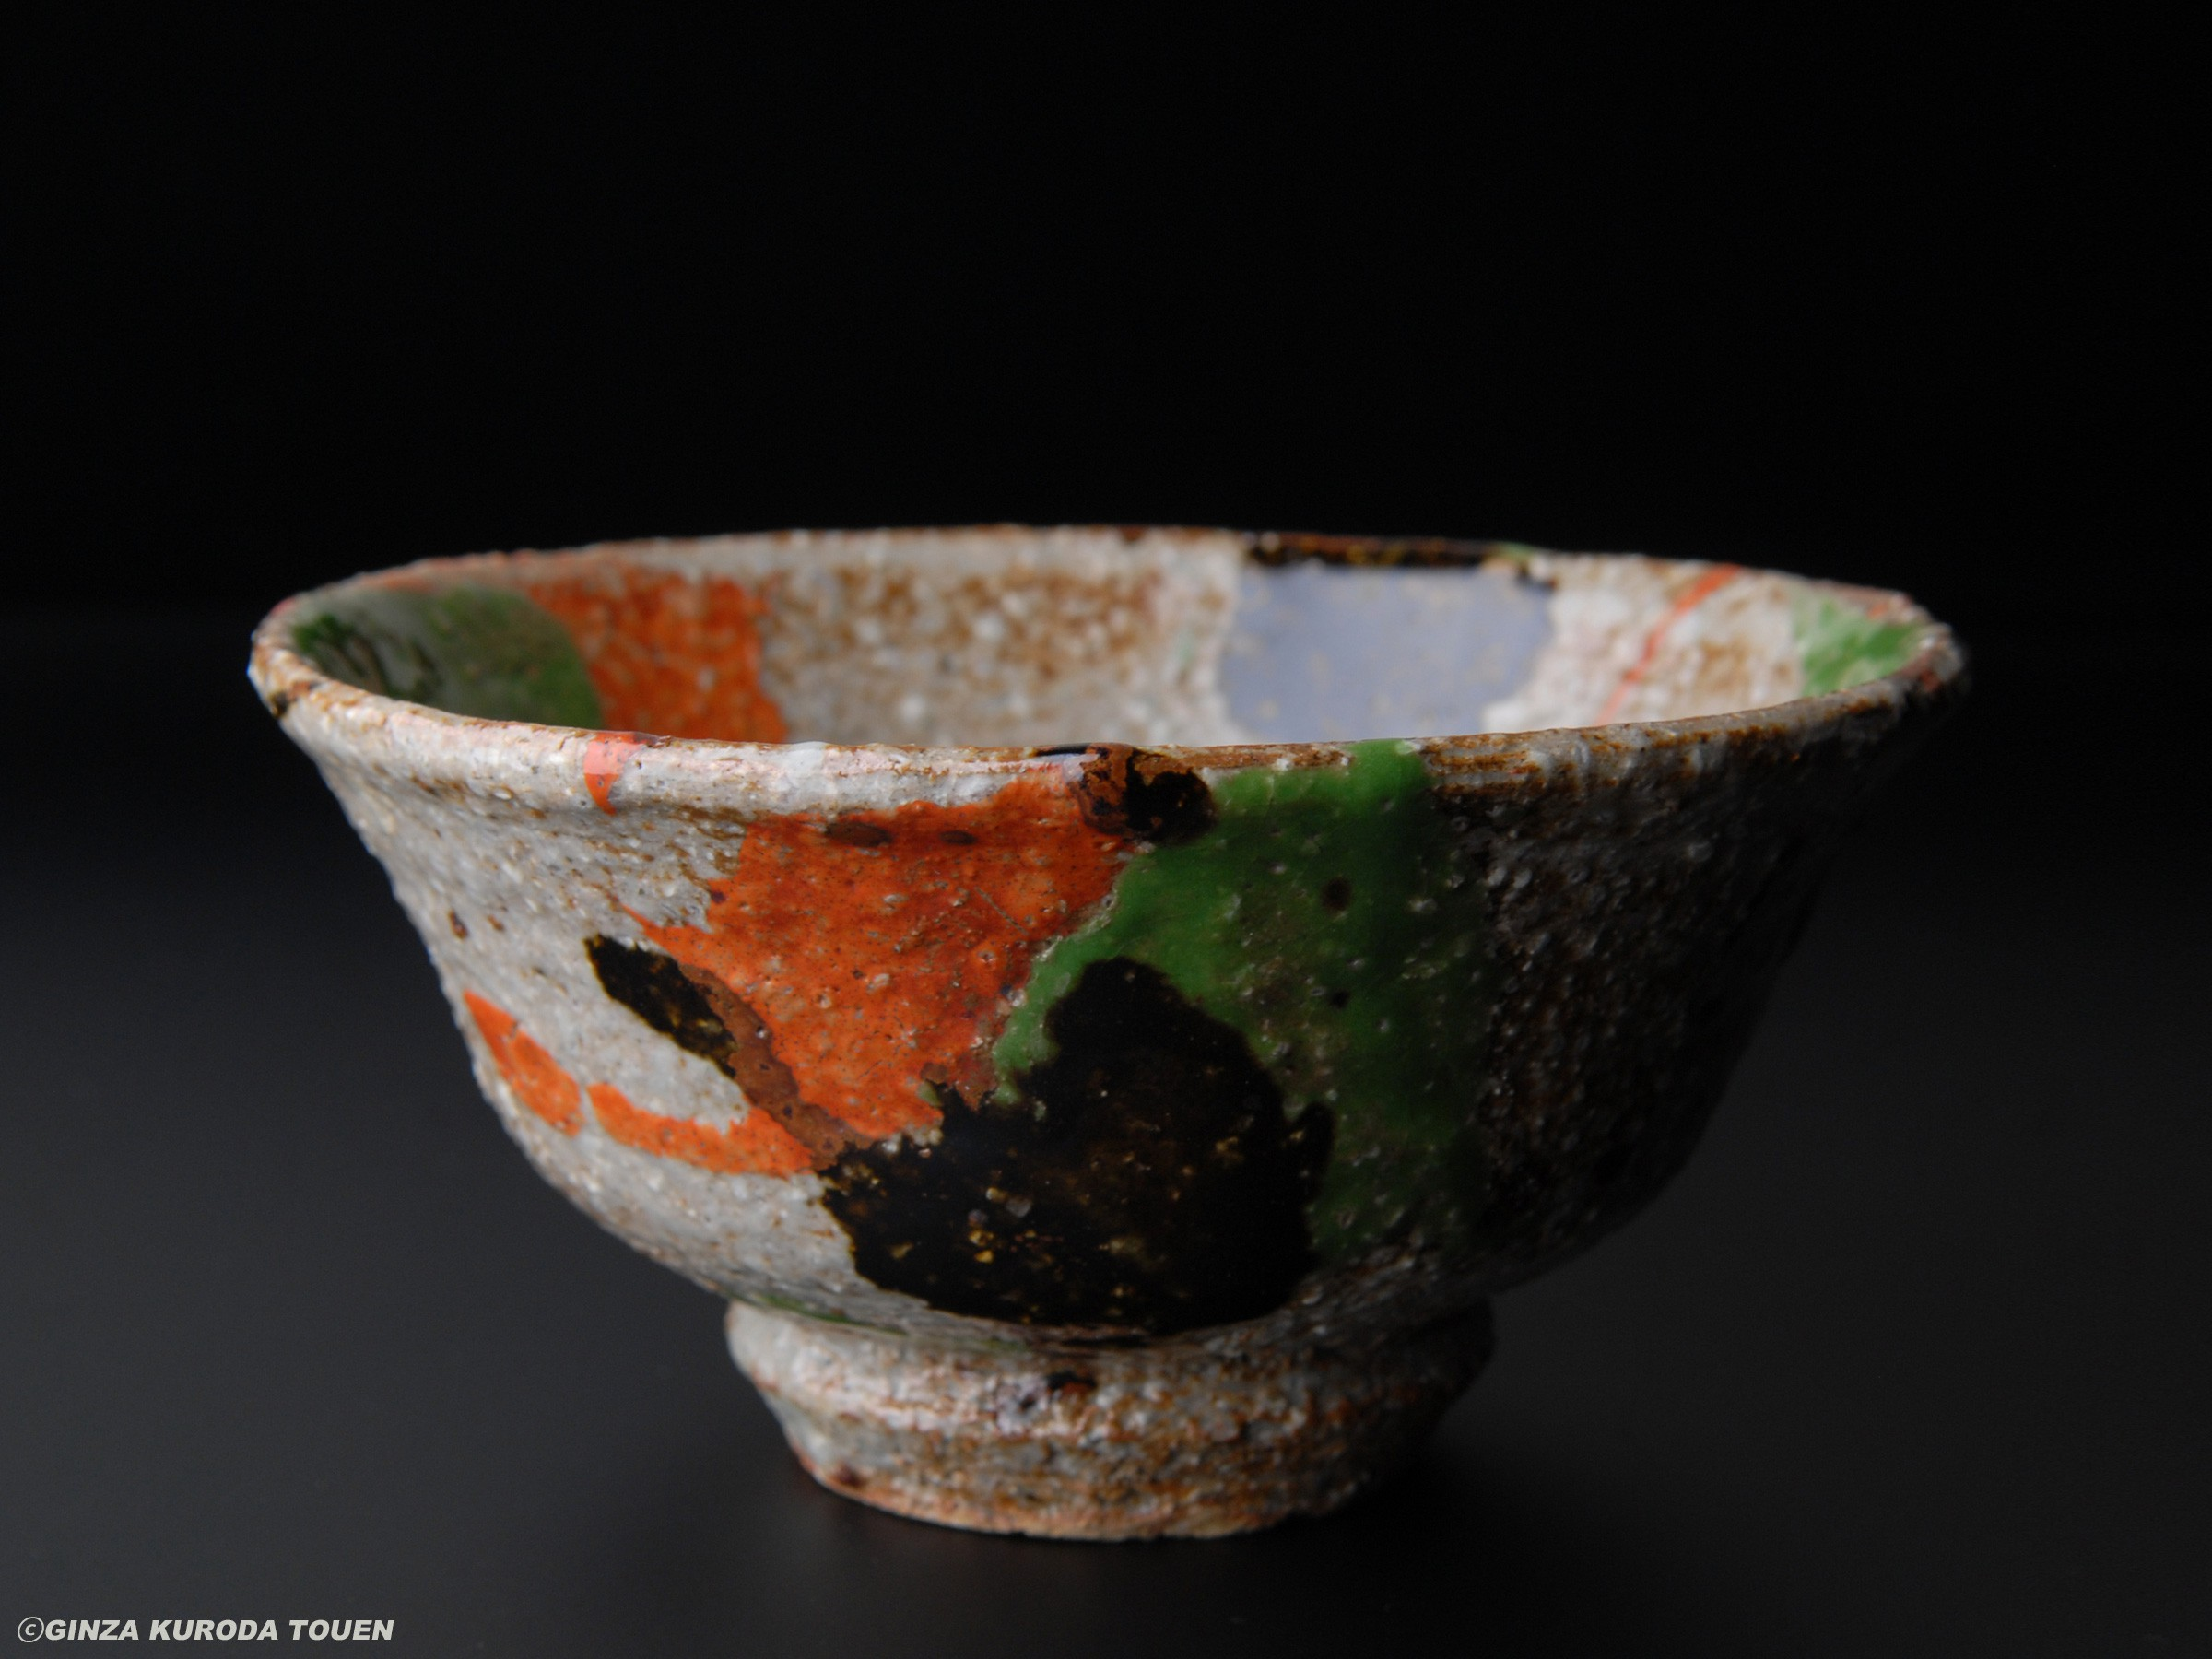 Kanjiro Kawai: Tea bowl, Three-colored